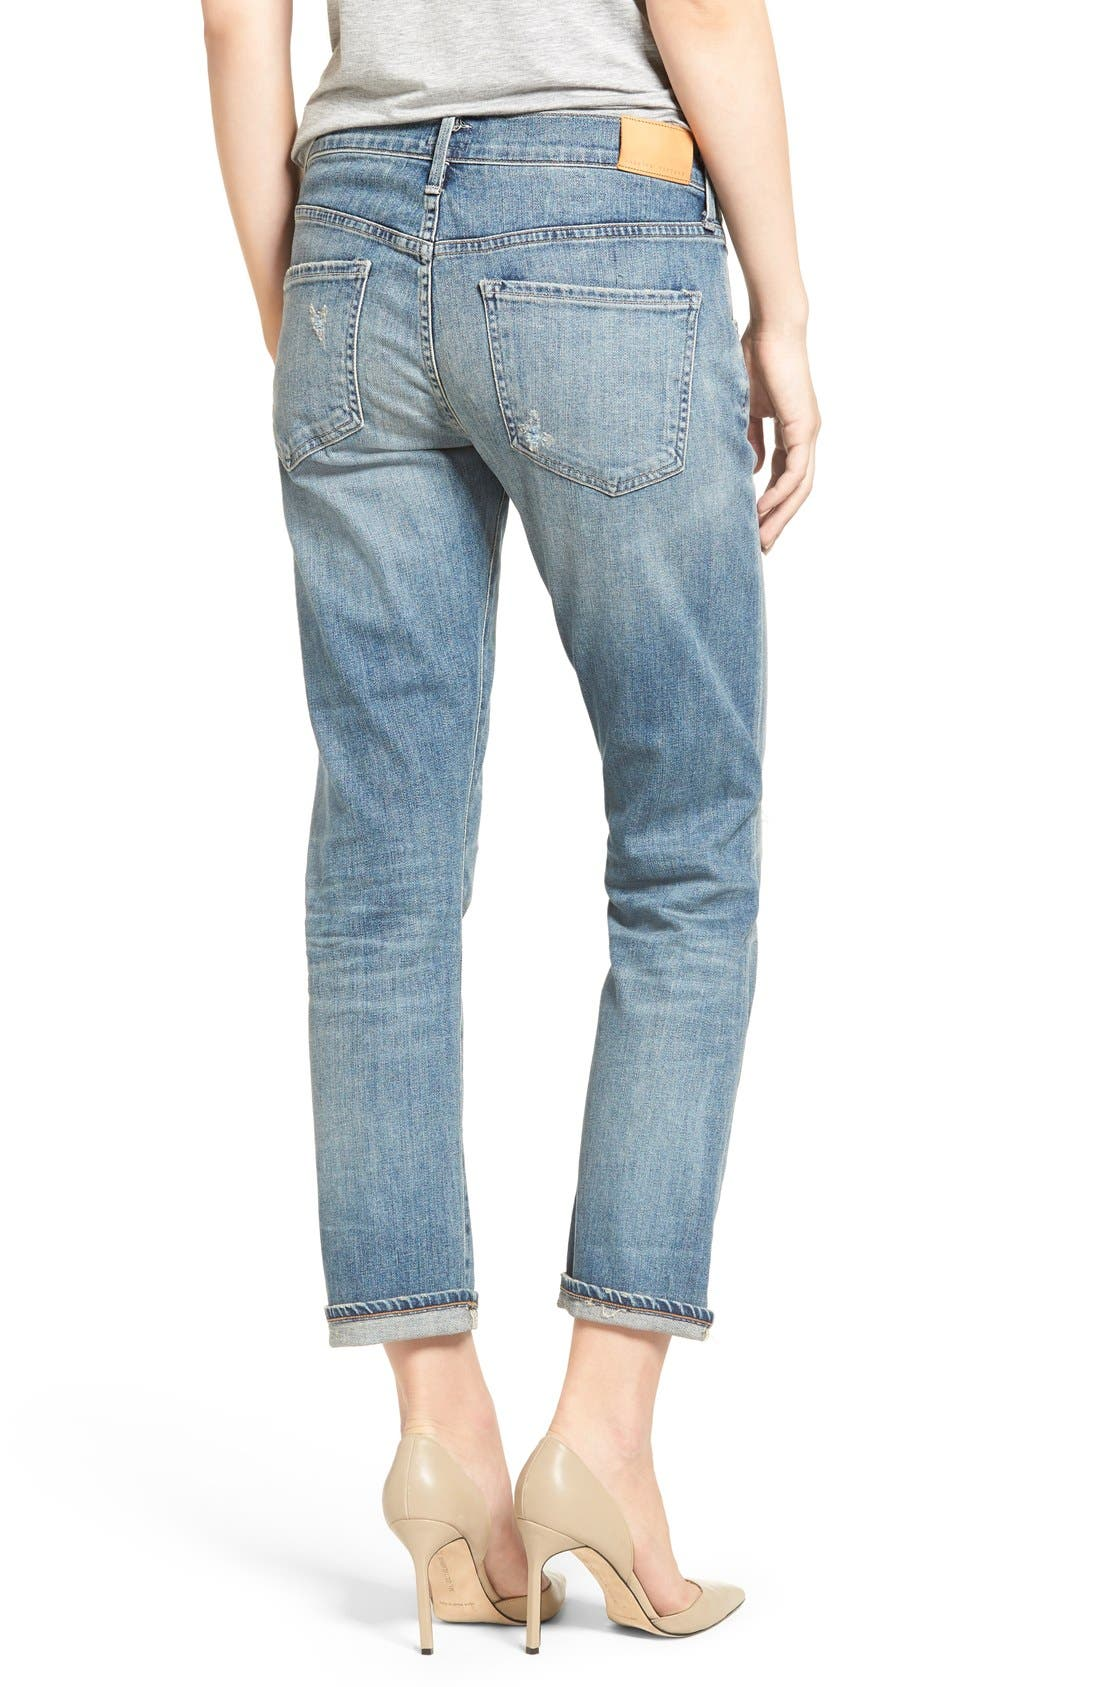 Alternate Image 2  - Citizens of Humanity 'Emerson' Ripped Slim Boyfriend Jeans (Roseland)